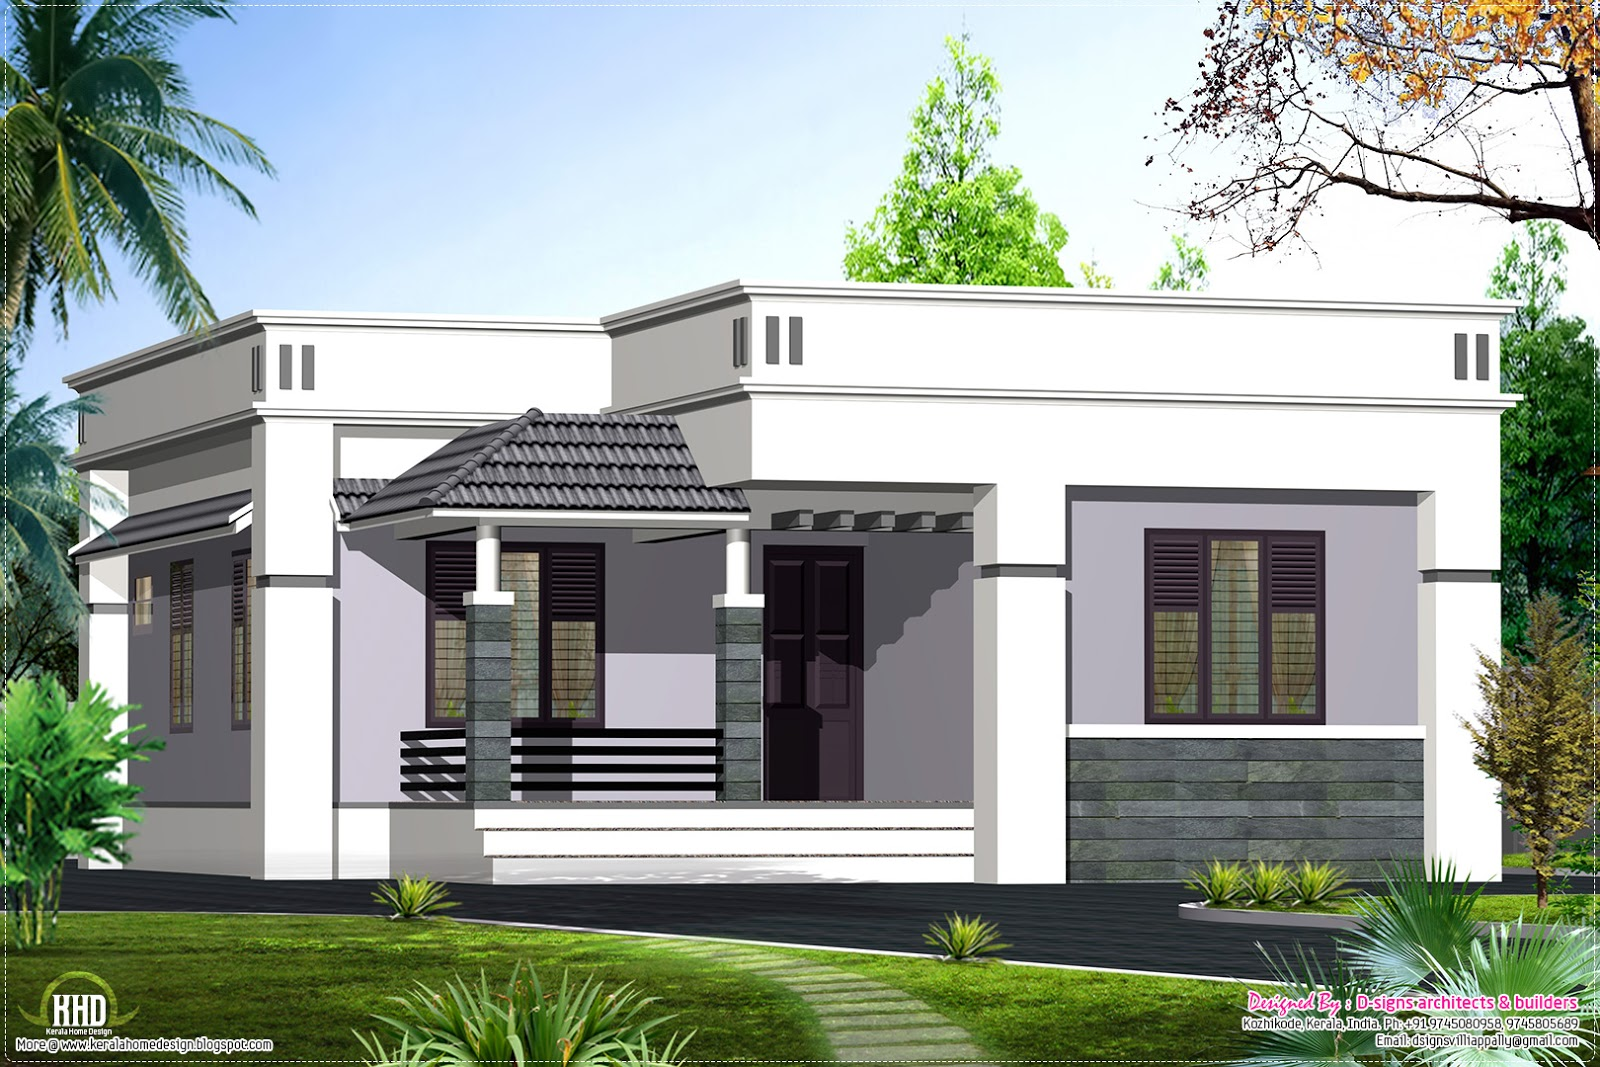 One floor house design 1100 sq.feet - Kerala home design and floor ...